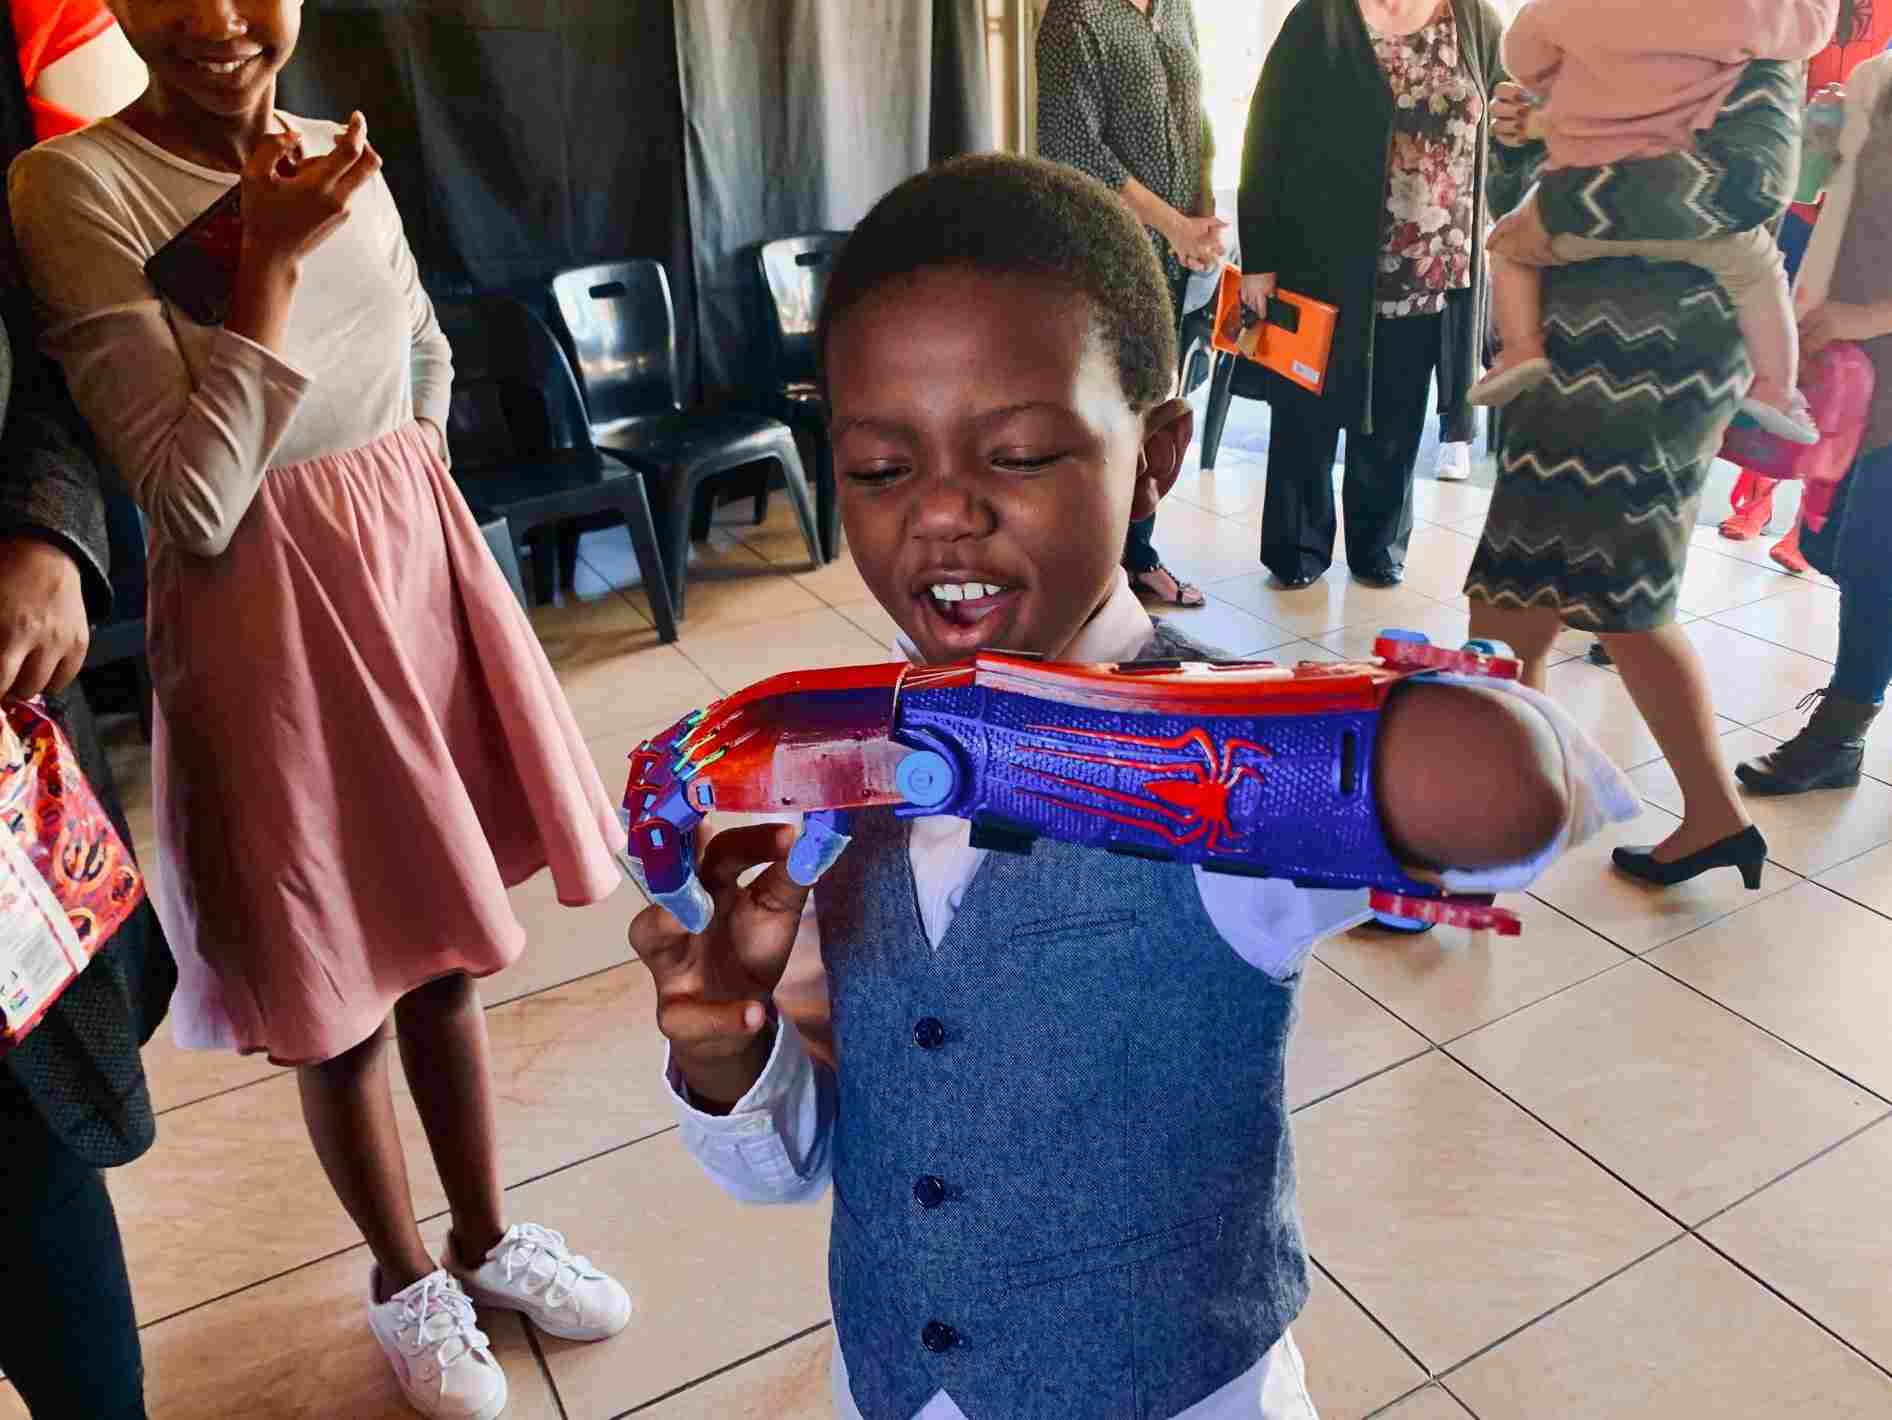 Nine-year-old South African student, Aphelele Gumede, enjoying his Spider-Man 3D prosthetic limb.